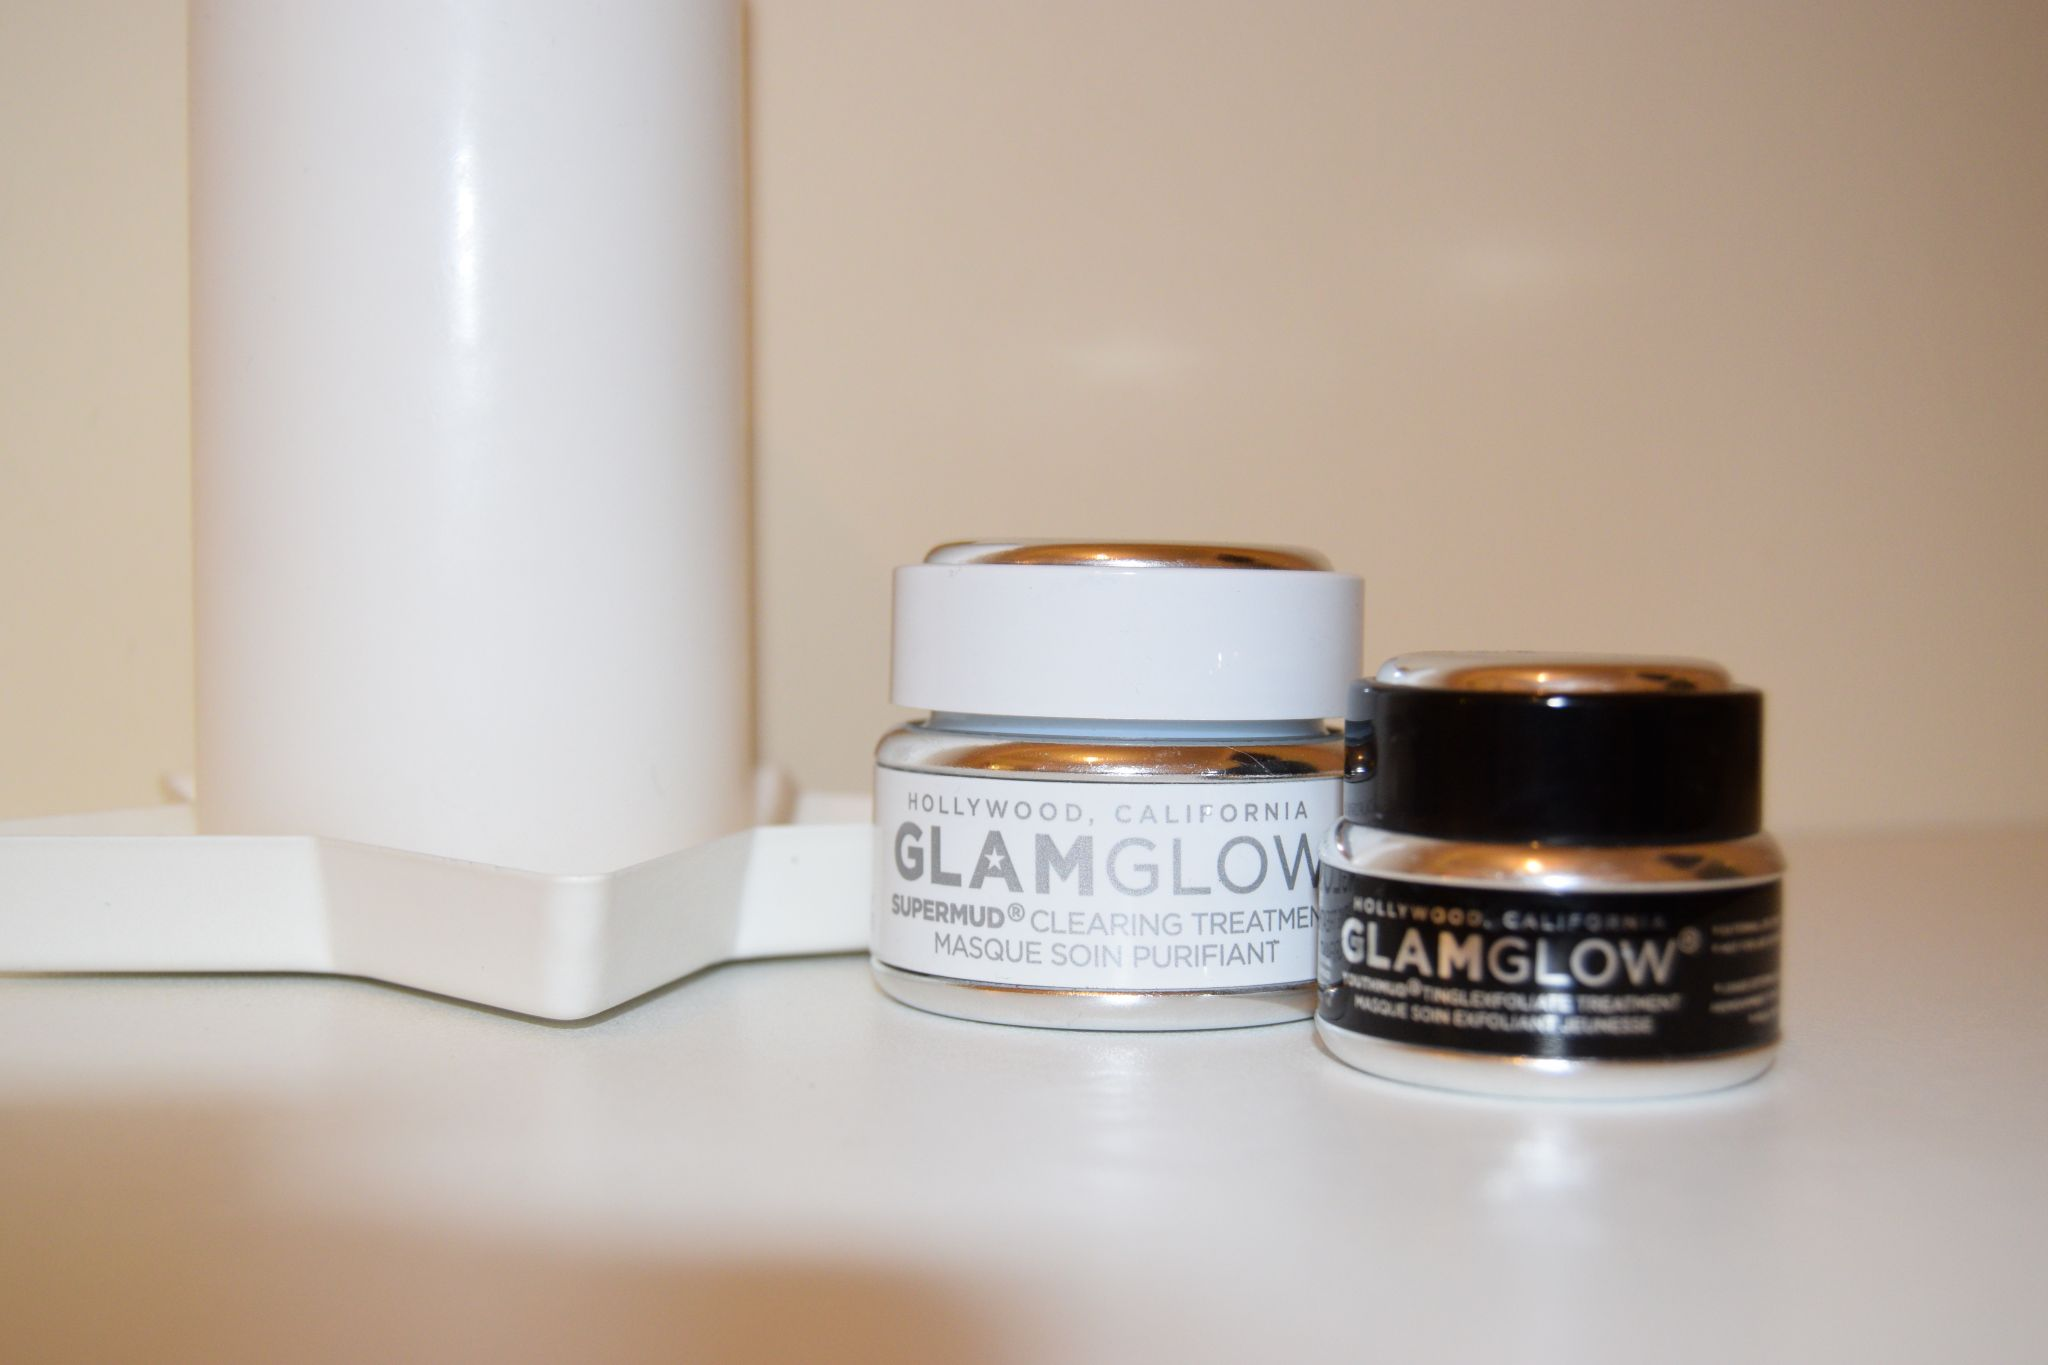 DSC 0776 1440x960 - Glam Glow: Get the gift of GLOW